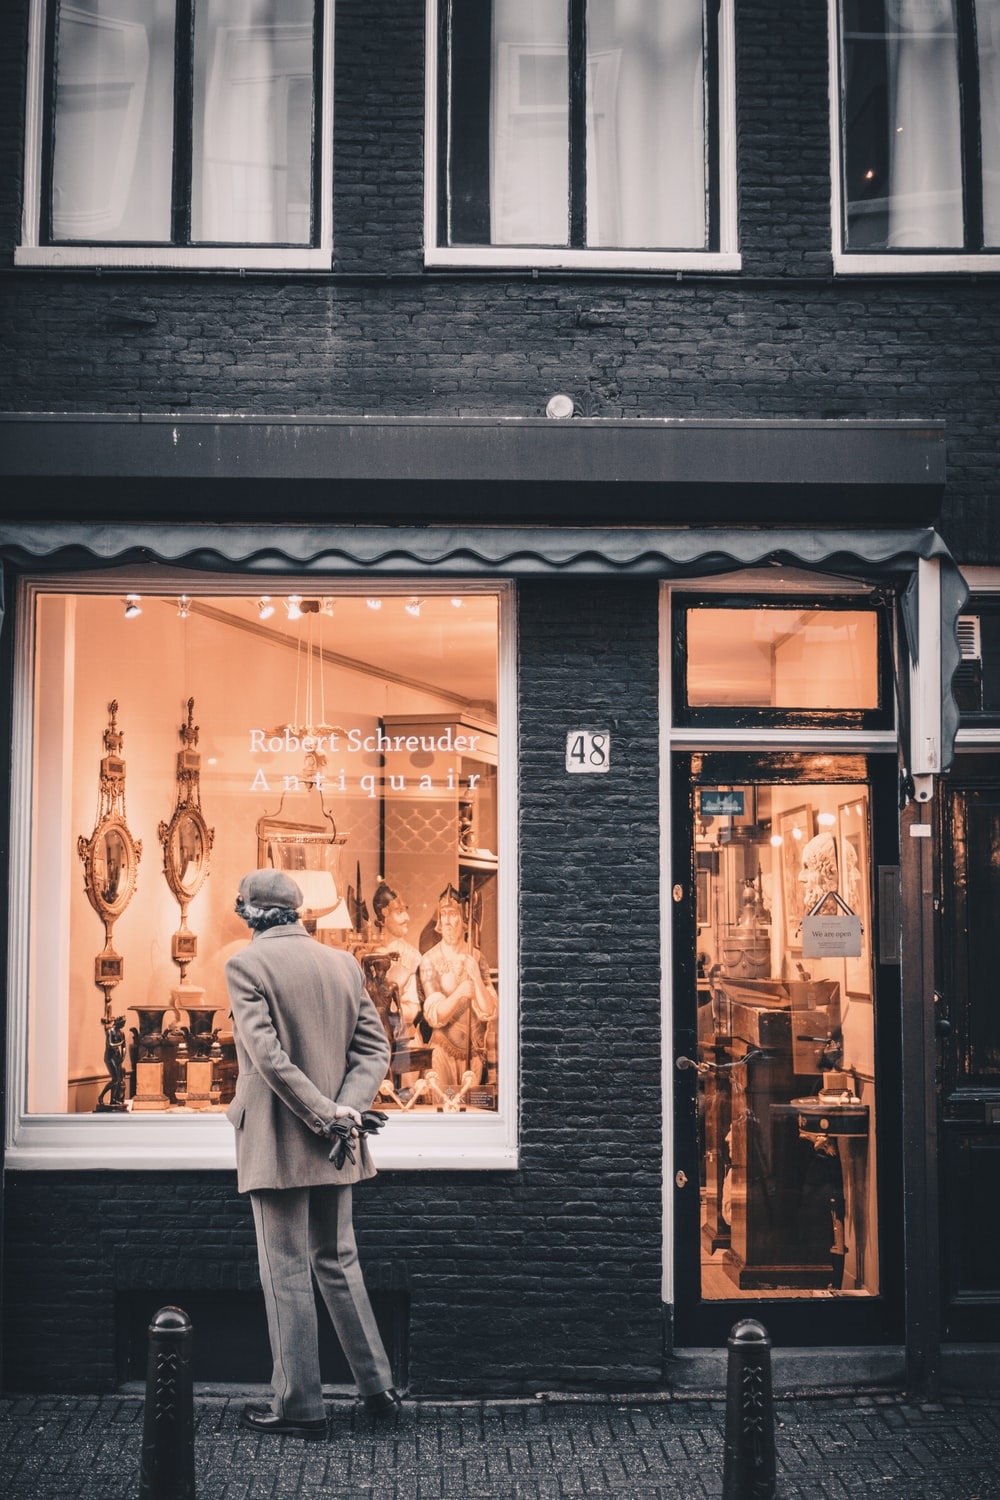 man standing in front of storefront